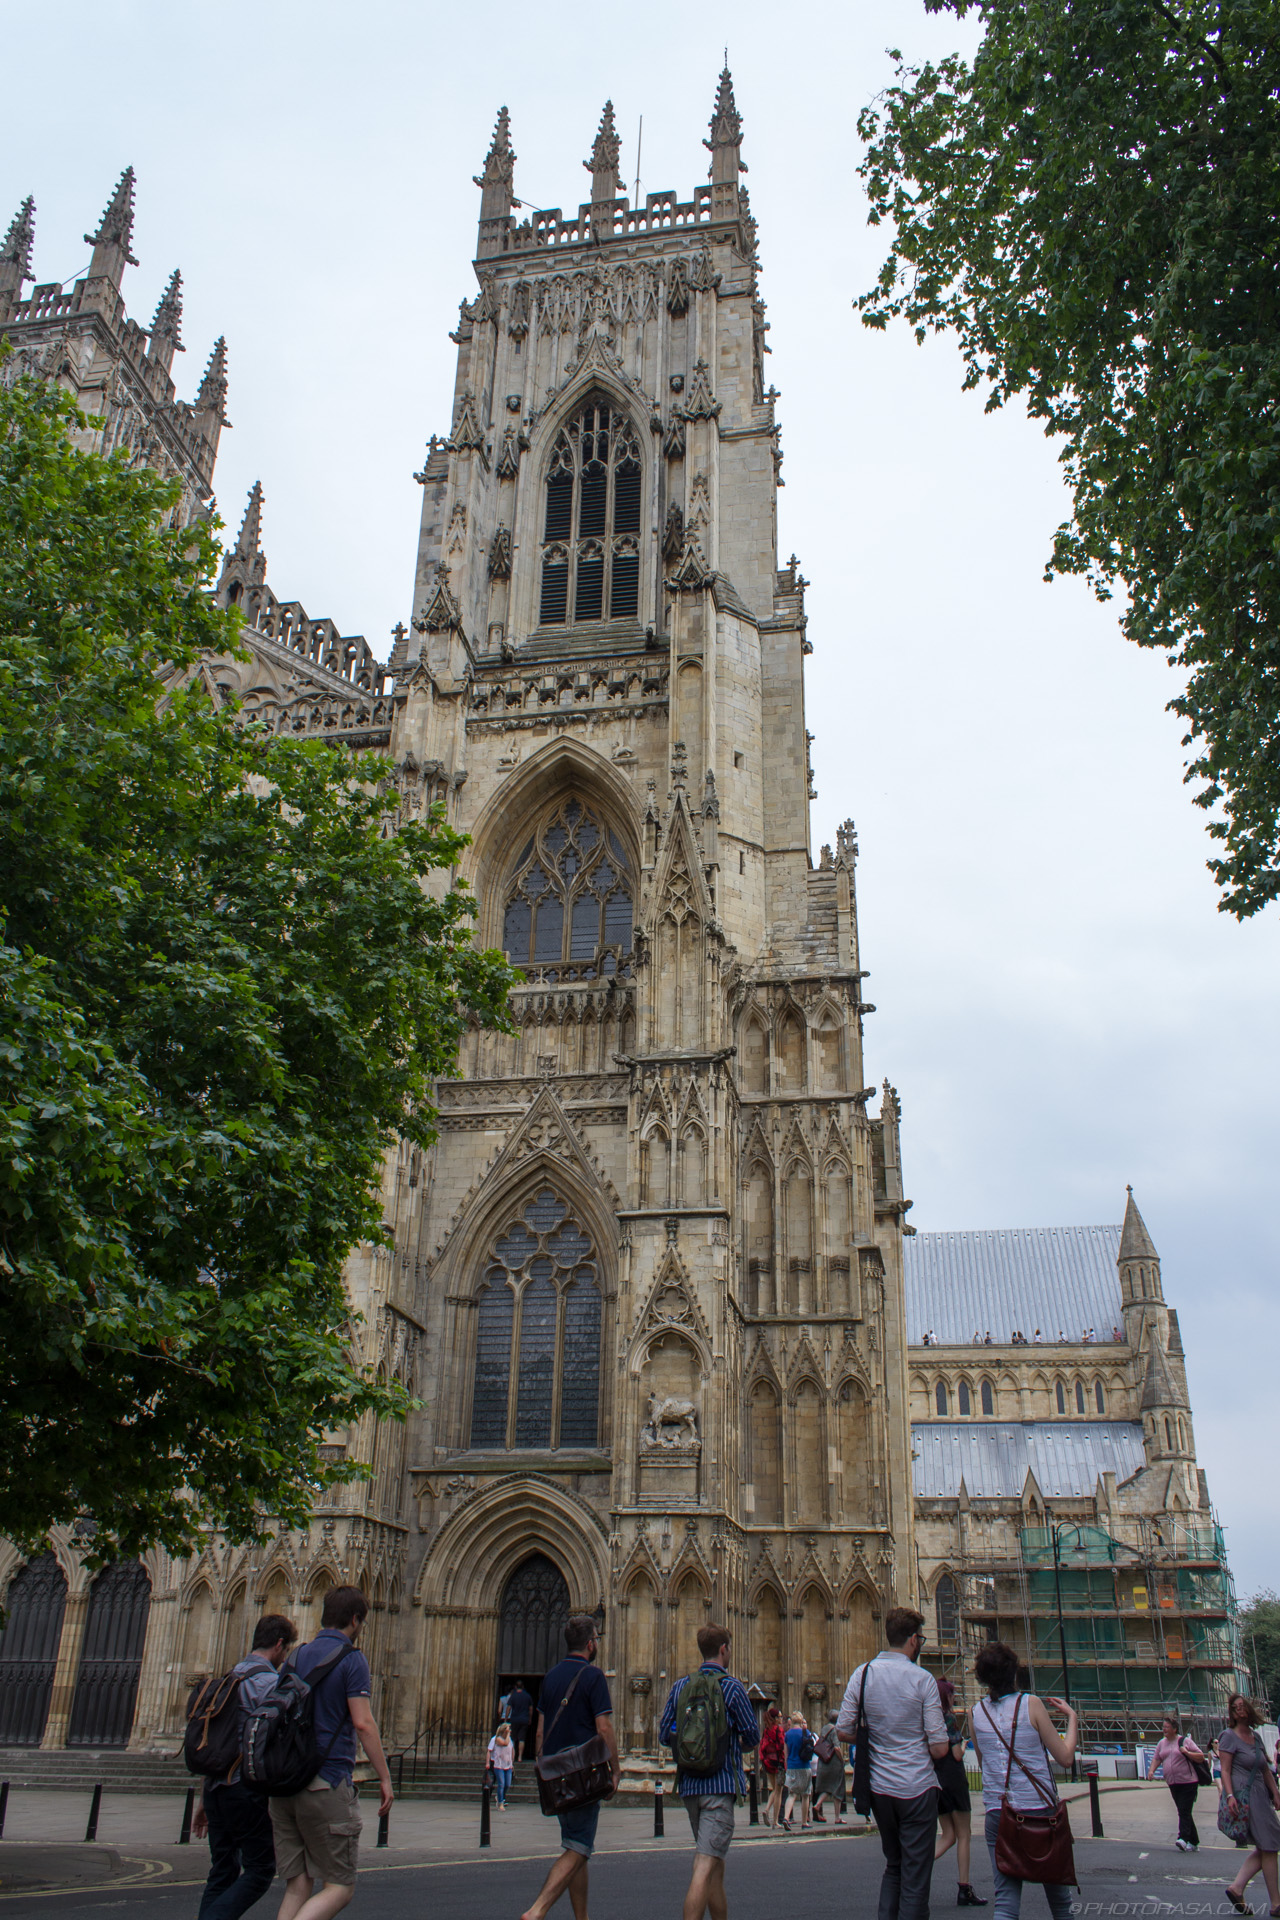 http://photorasa.com/yorkminster-cathedral/york-minster-cathedral-west-tower/